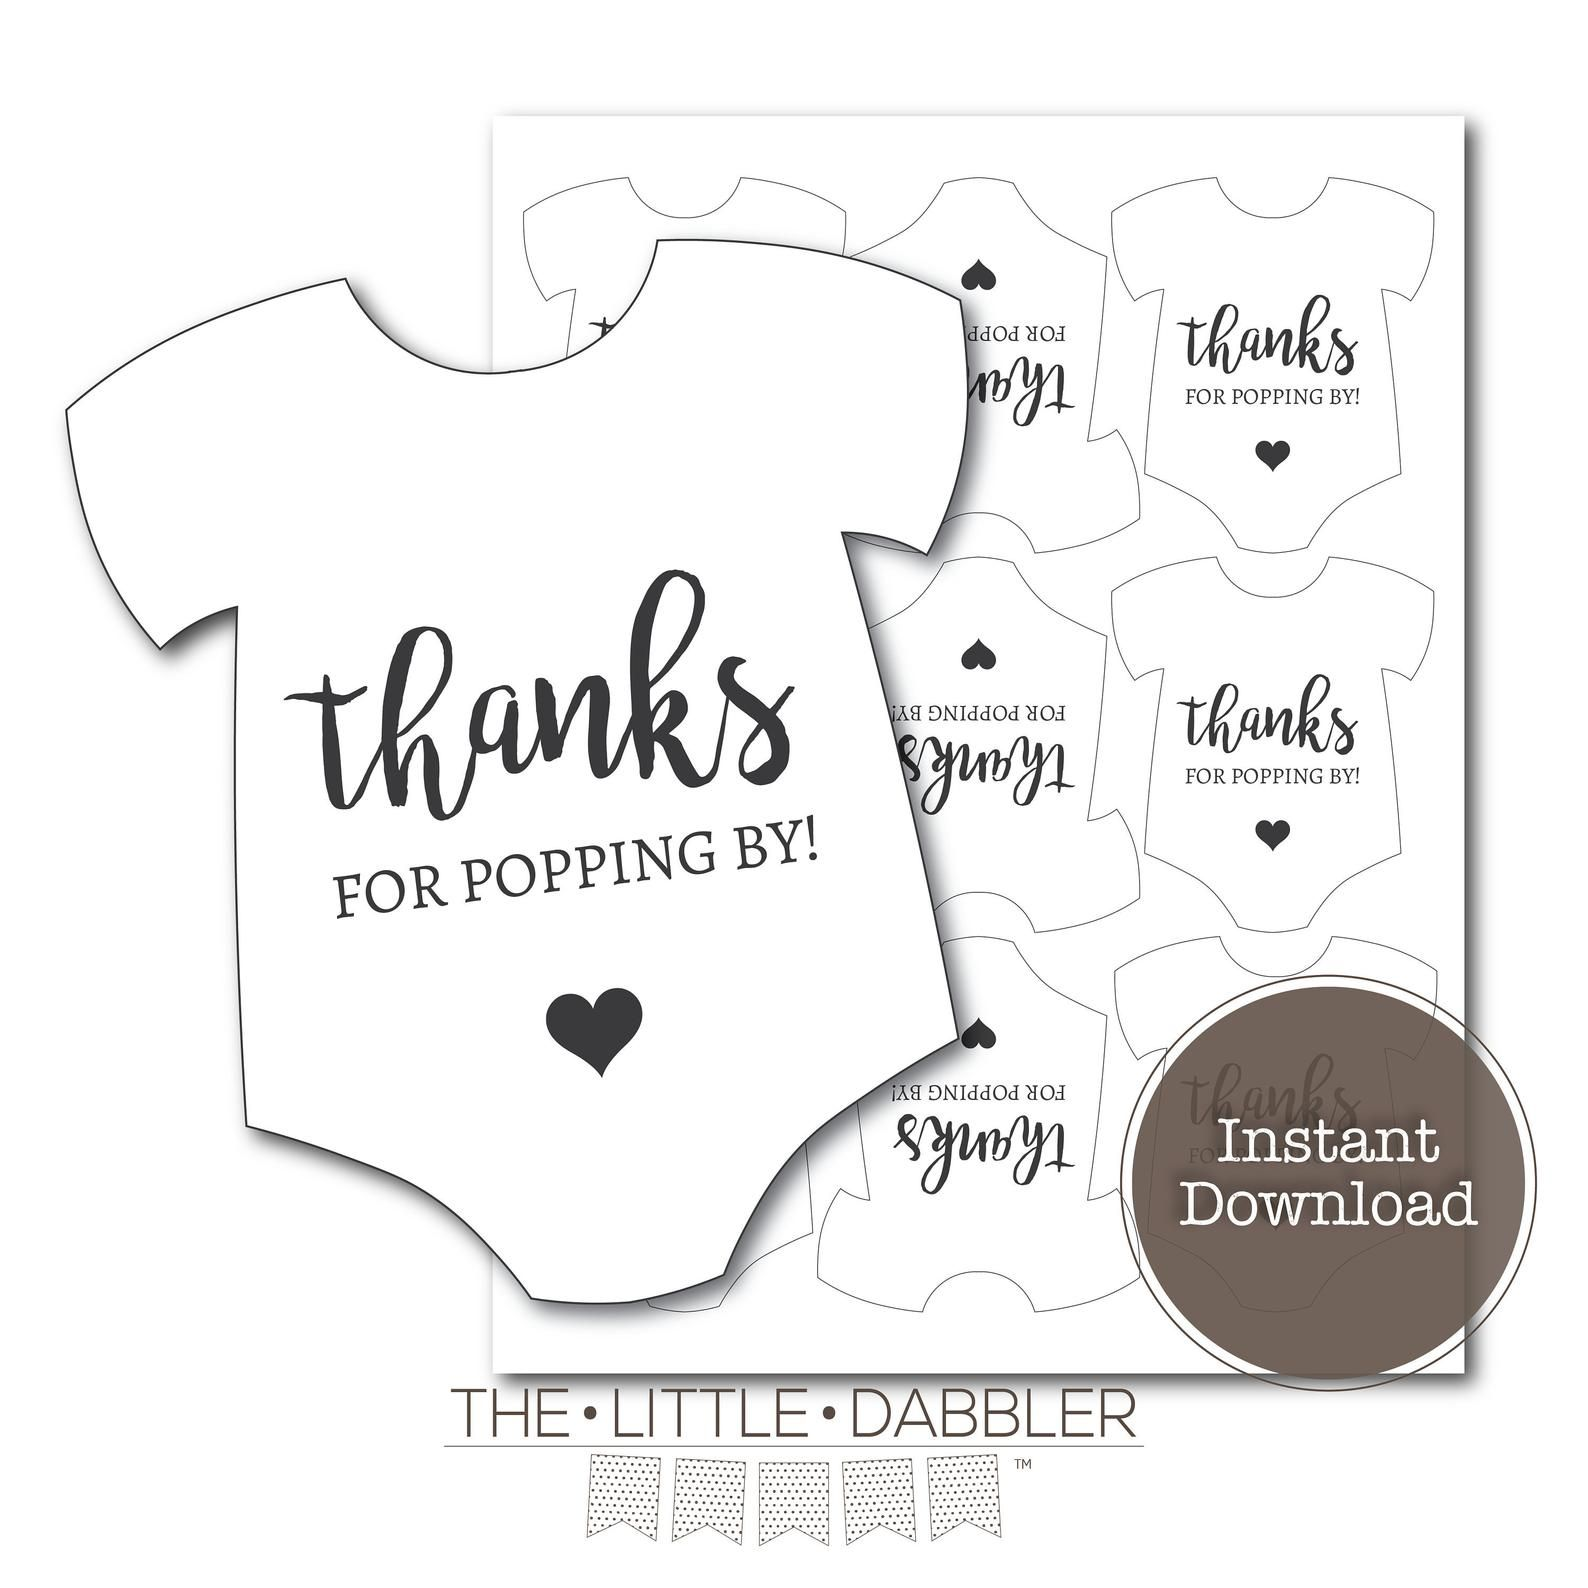 Thanks For Popping By Printable Baby Shower Mini Onesie Etsy Baby Shower Printables Baby Shower Favor Tags Baby Shower Thank You Cards Baby shower favor tags template